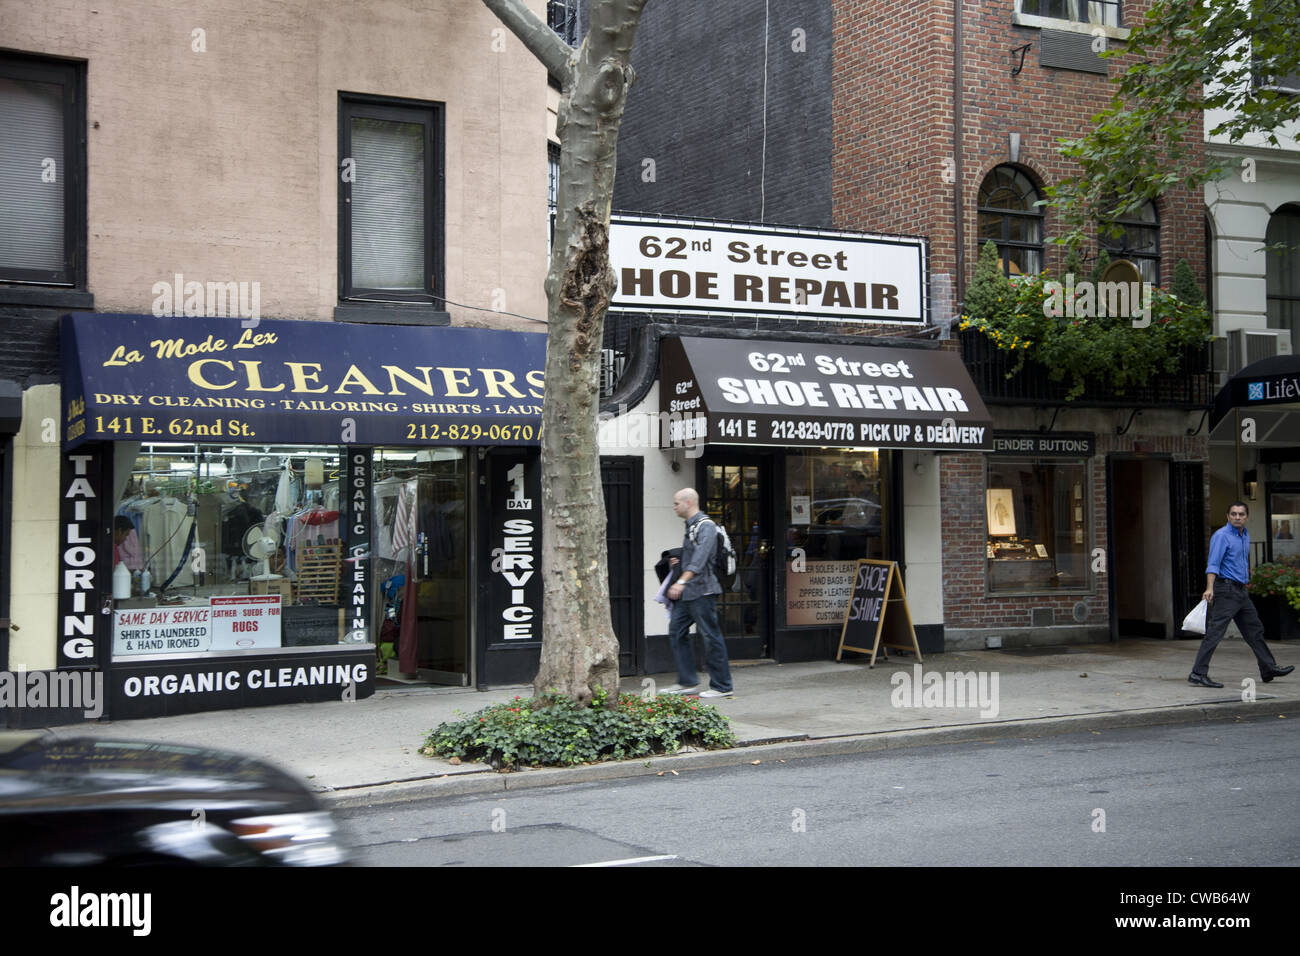 NYC is still known for its small independent shops, services & restaurants amidst this corporate world capital. - Stock Image